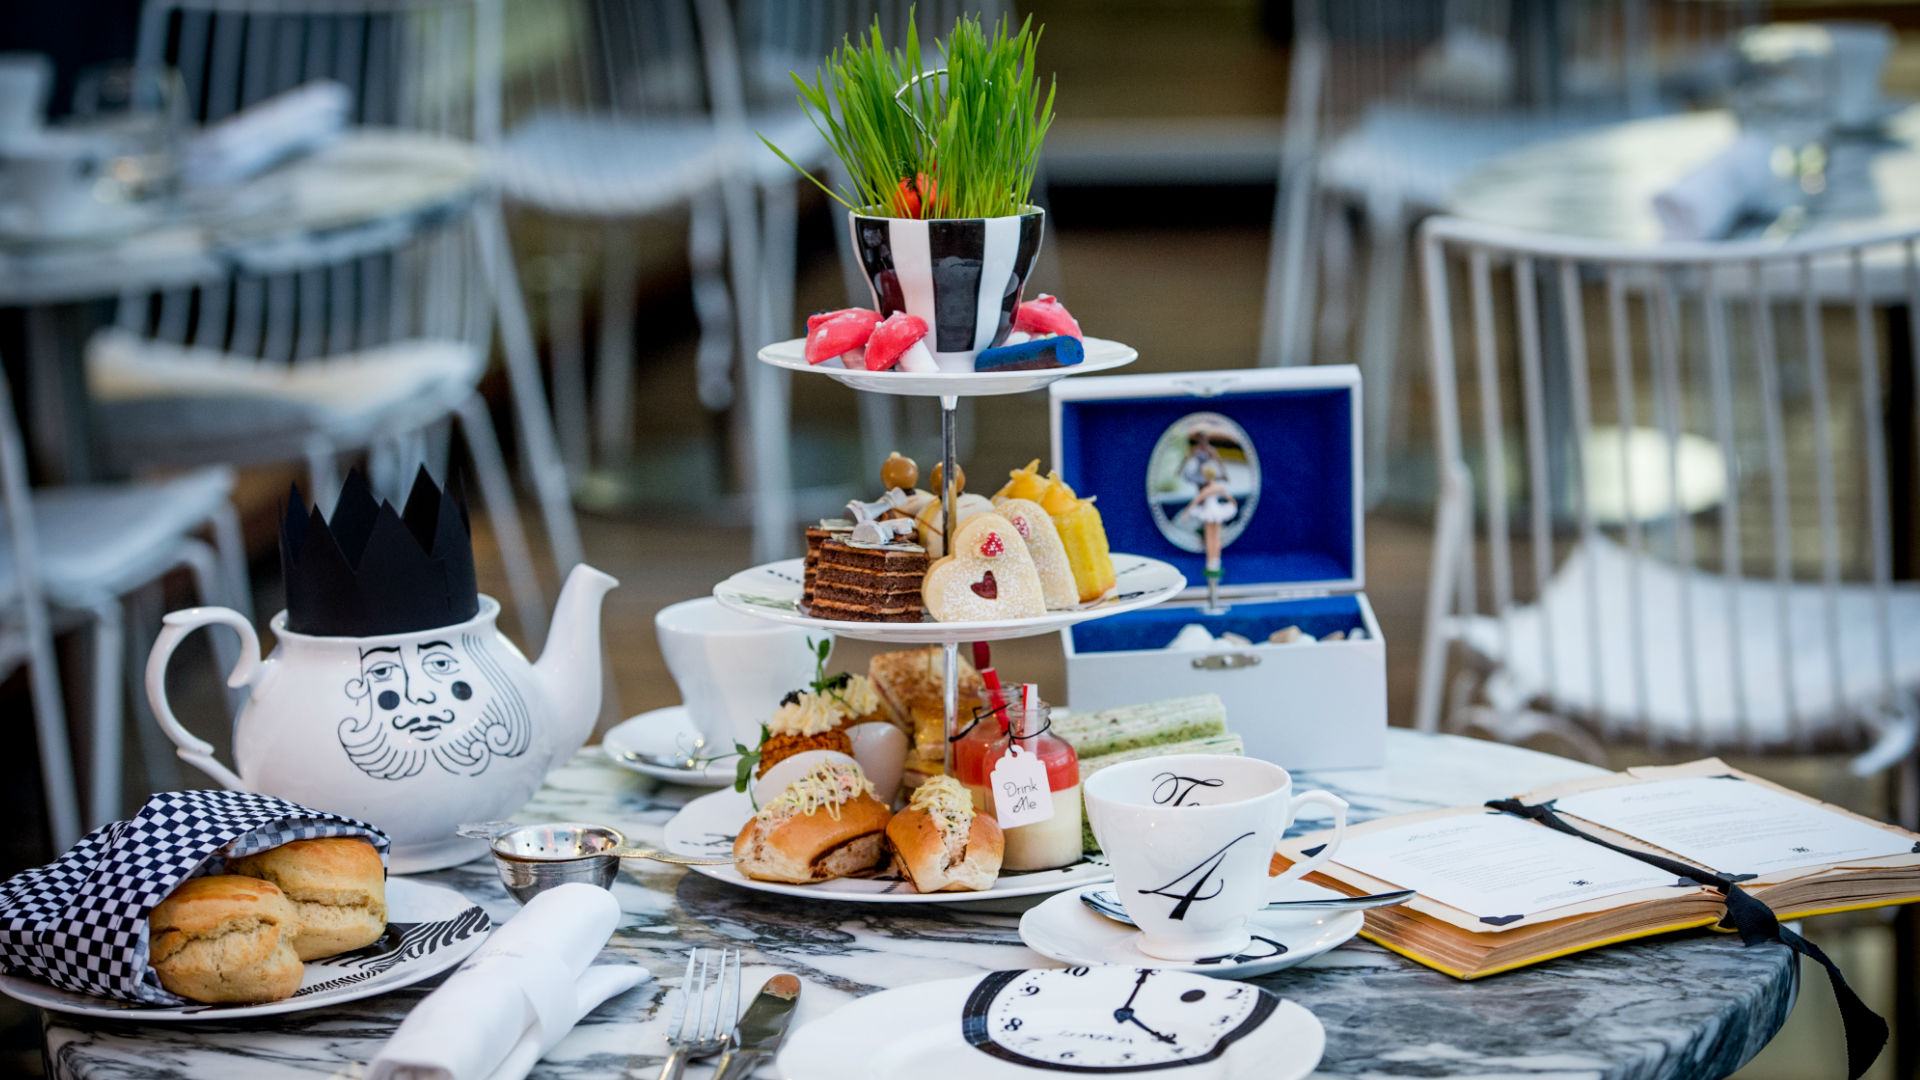 Scones, cakes and sandwiches in the Mad Hatter's Afternoon Tea at Sanderson. Image courtesy of Sanderson